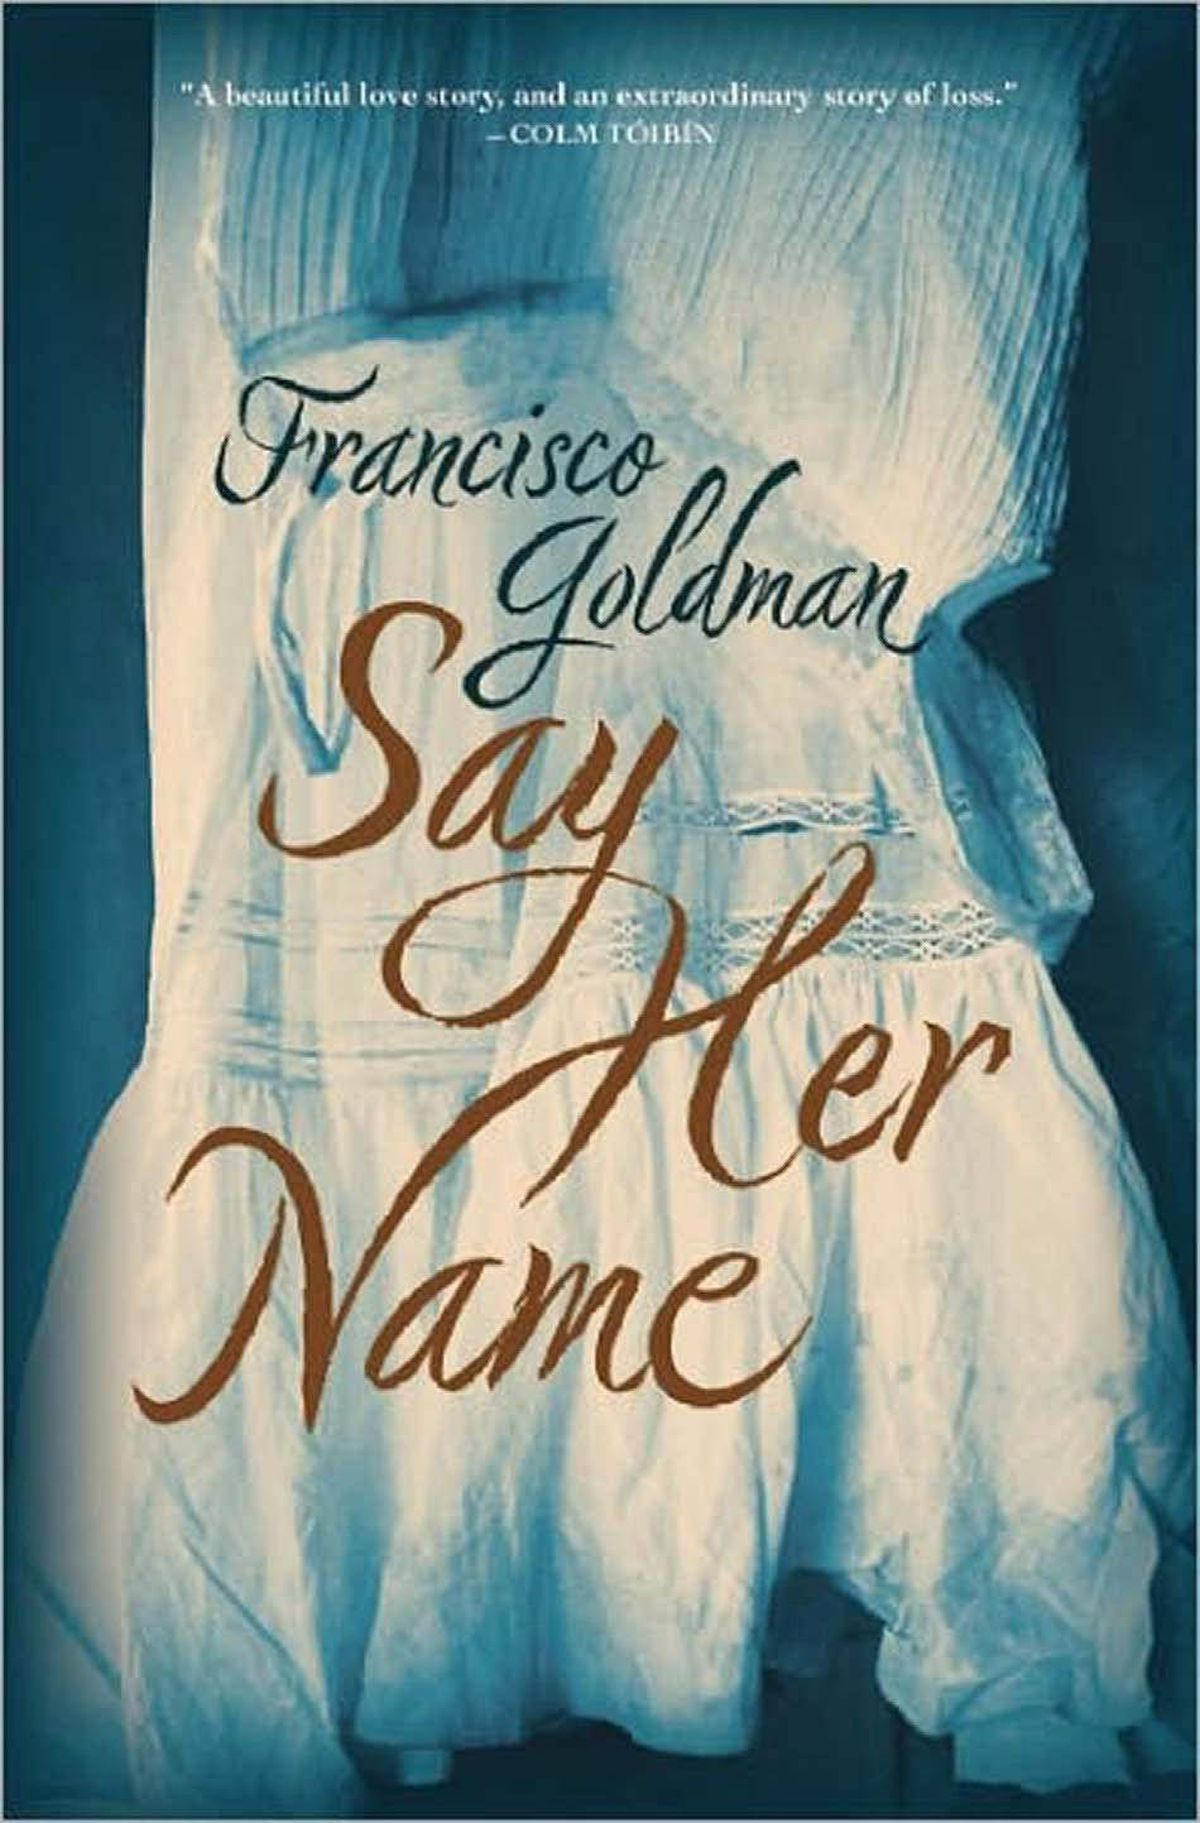 """SAY HER NAME By Francisco Goldman (Grove) Goldman's sublime and heart-rending story of his marriage to Mexican writer Aura Estrada, and of her tragic death is a book about loss and grief and the attendant """"guilt, shame, and dread, on an endless loop."""" Say Her Name is also an unforgettable love story, a testament to a great love and love's greatness. – John Goldbach"""